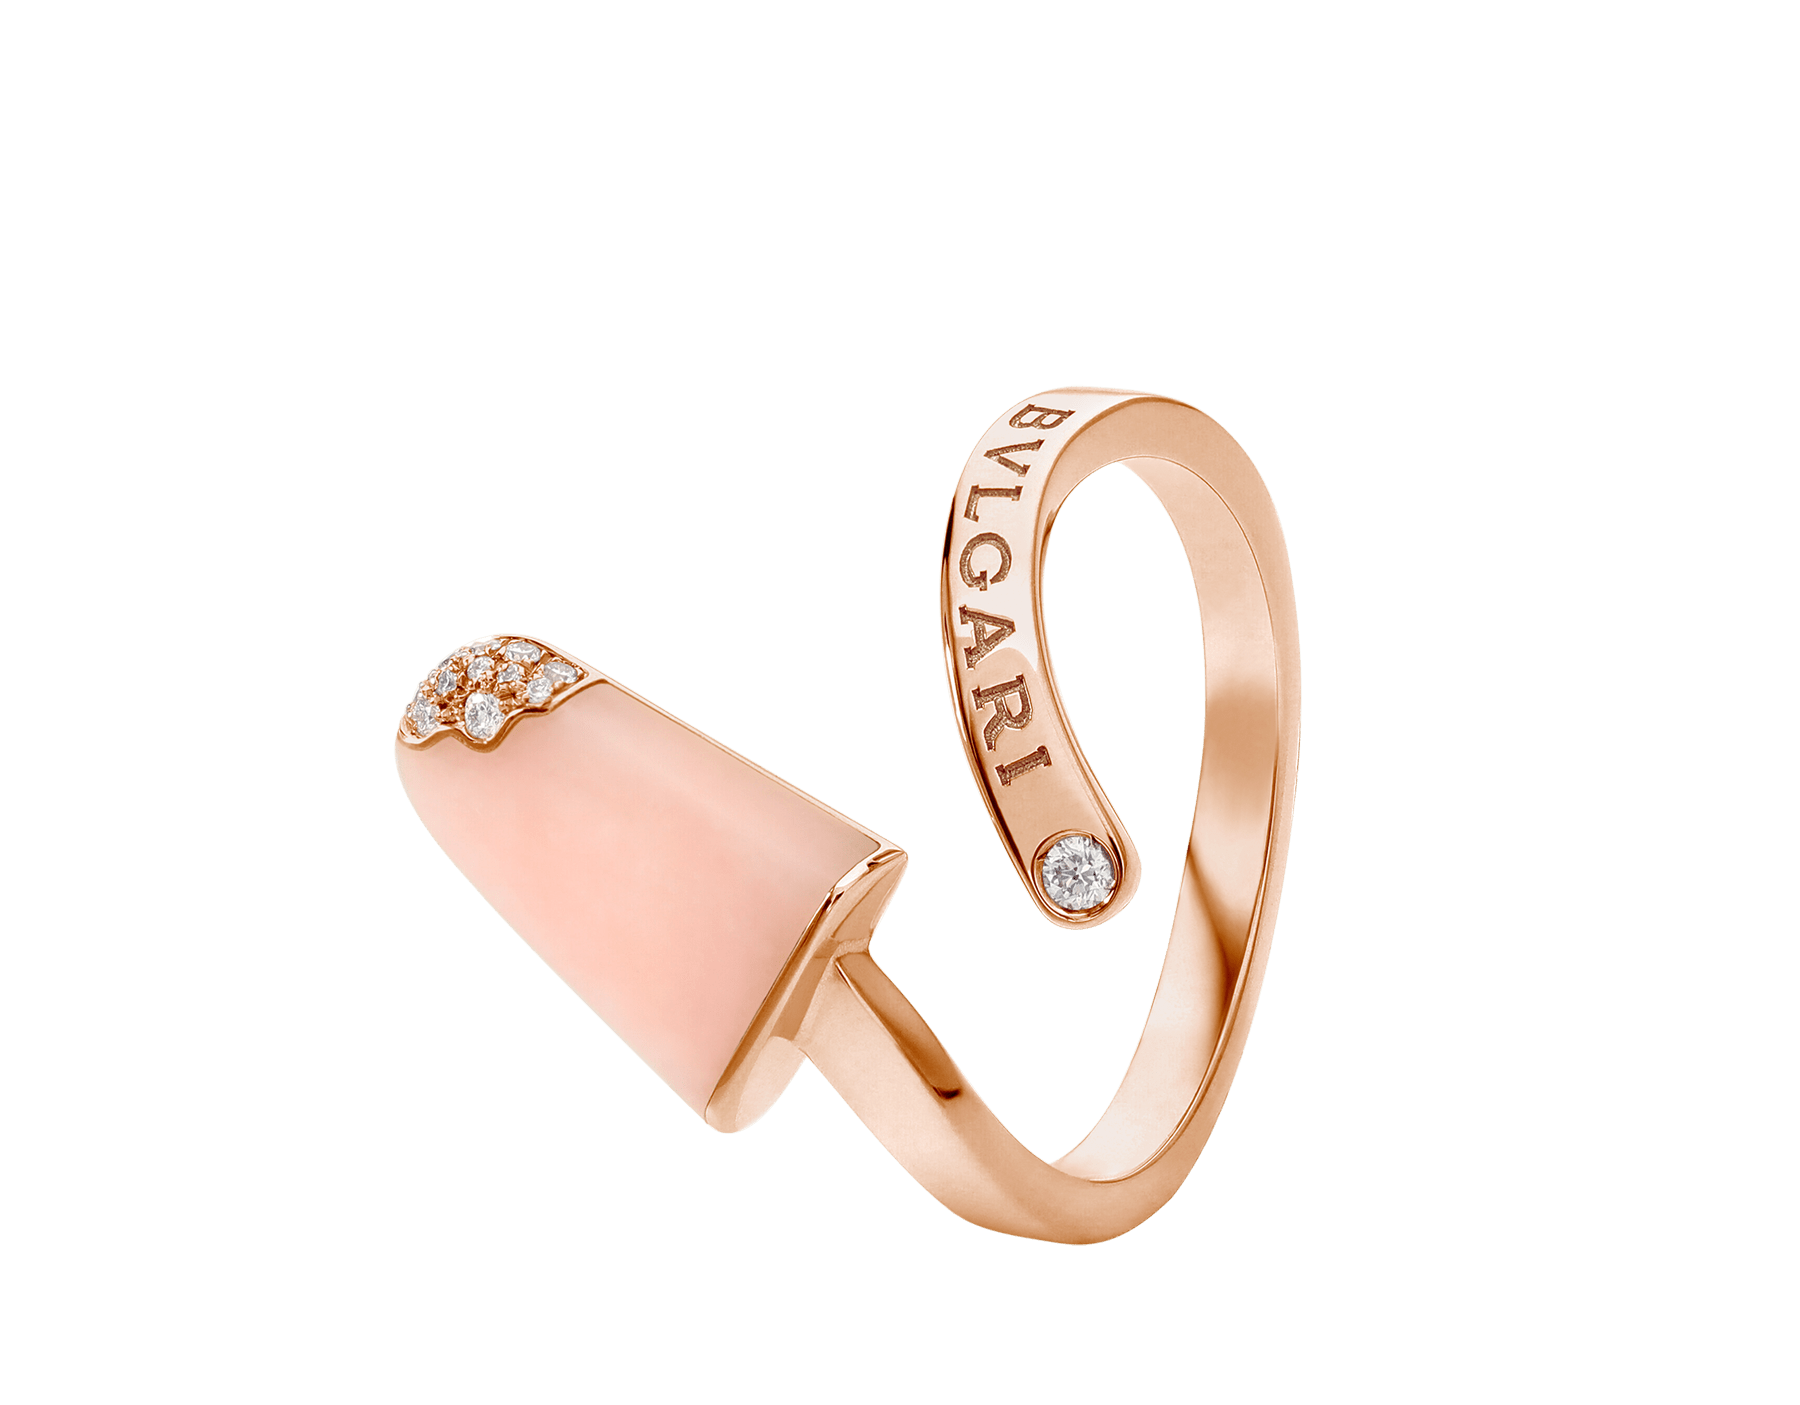 BVLGARI BVLGARI 18 kt rose gold ring set with pink opal and pavé diamonds AN858657 image 2